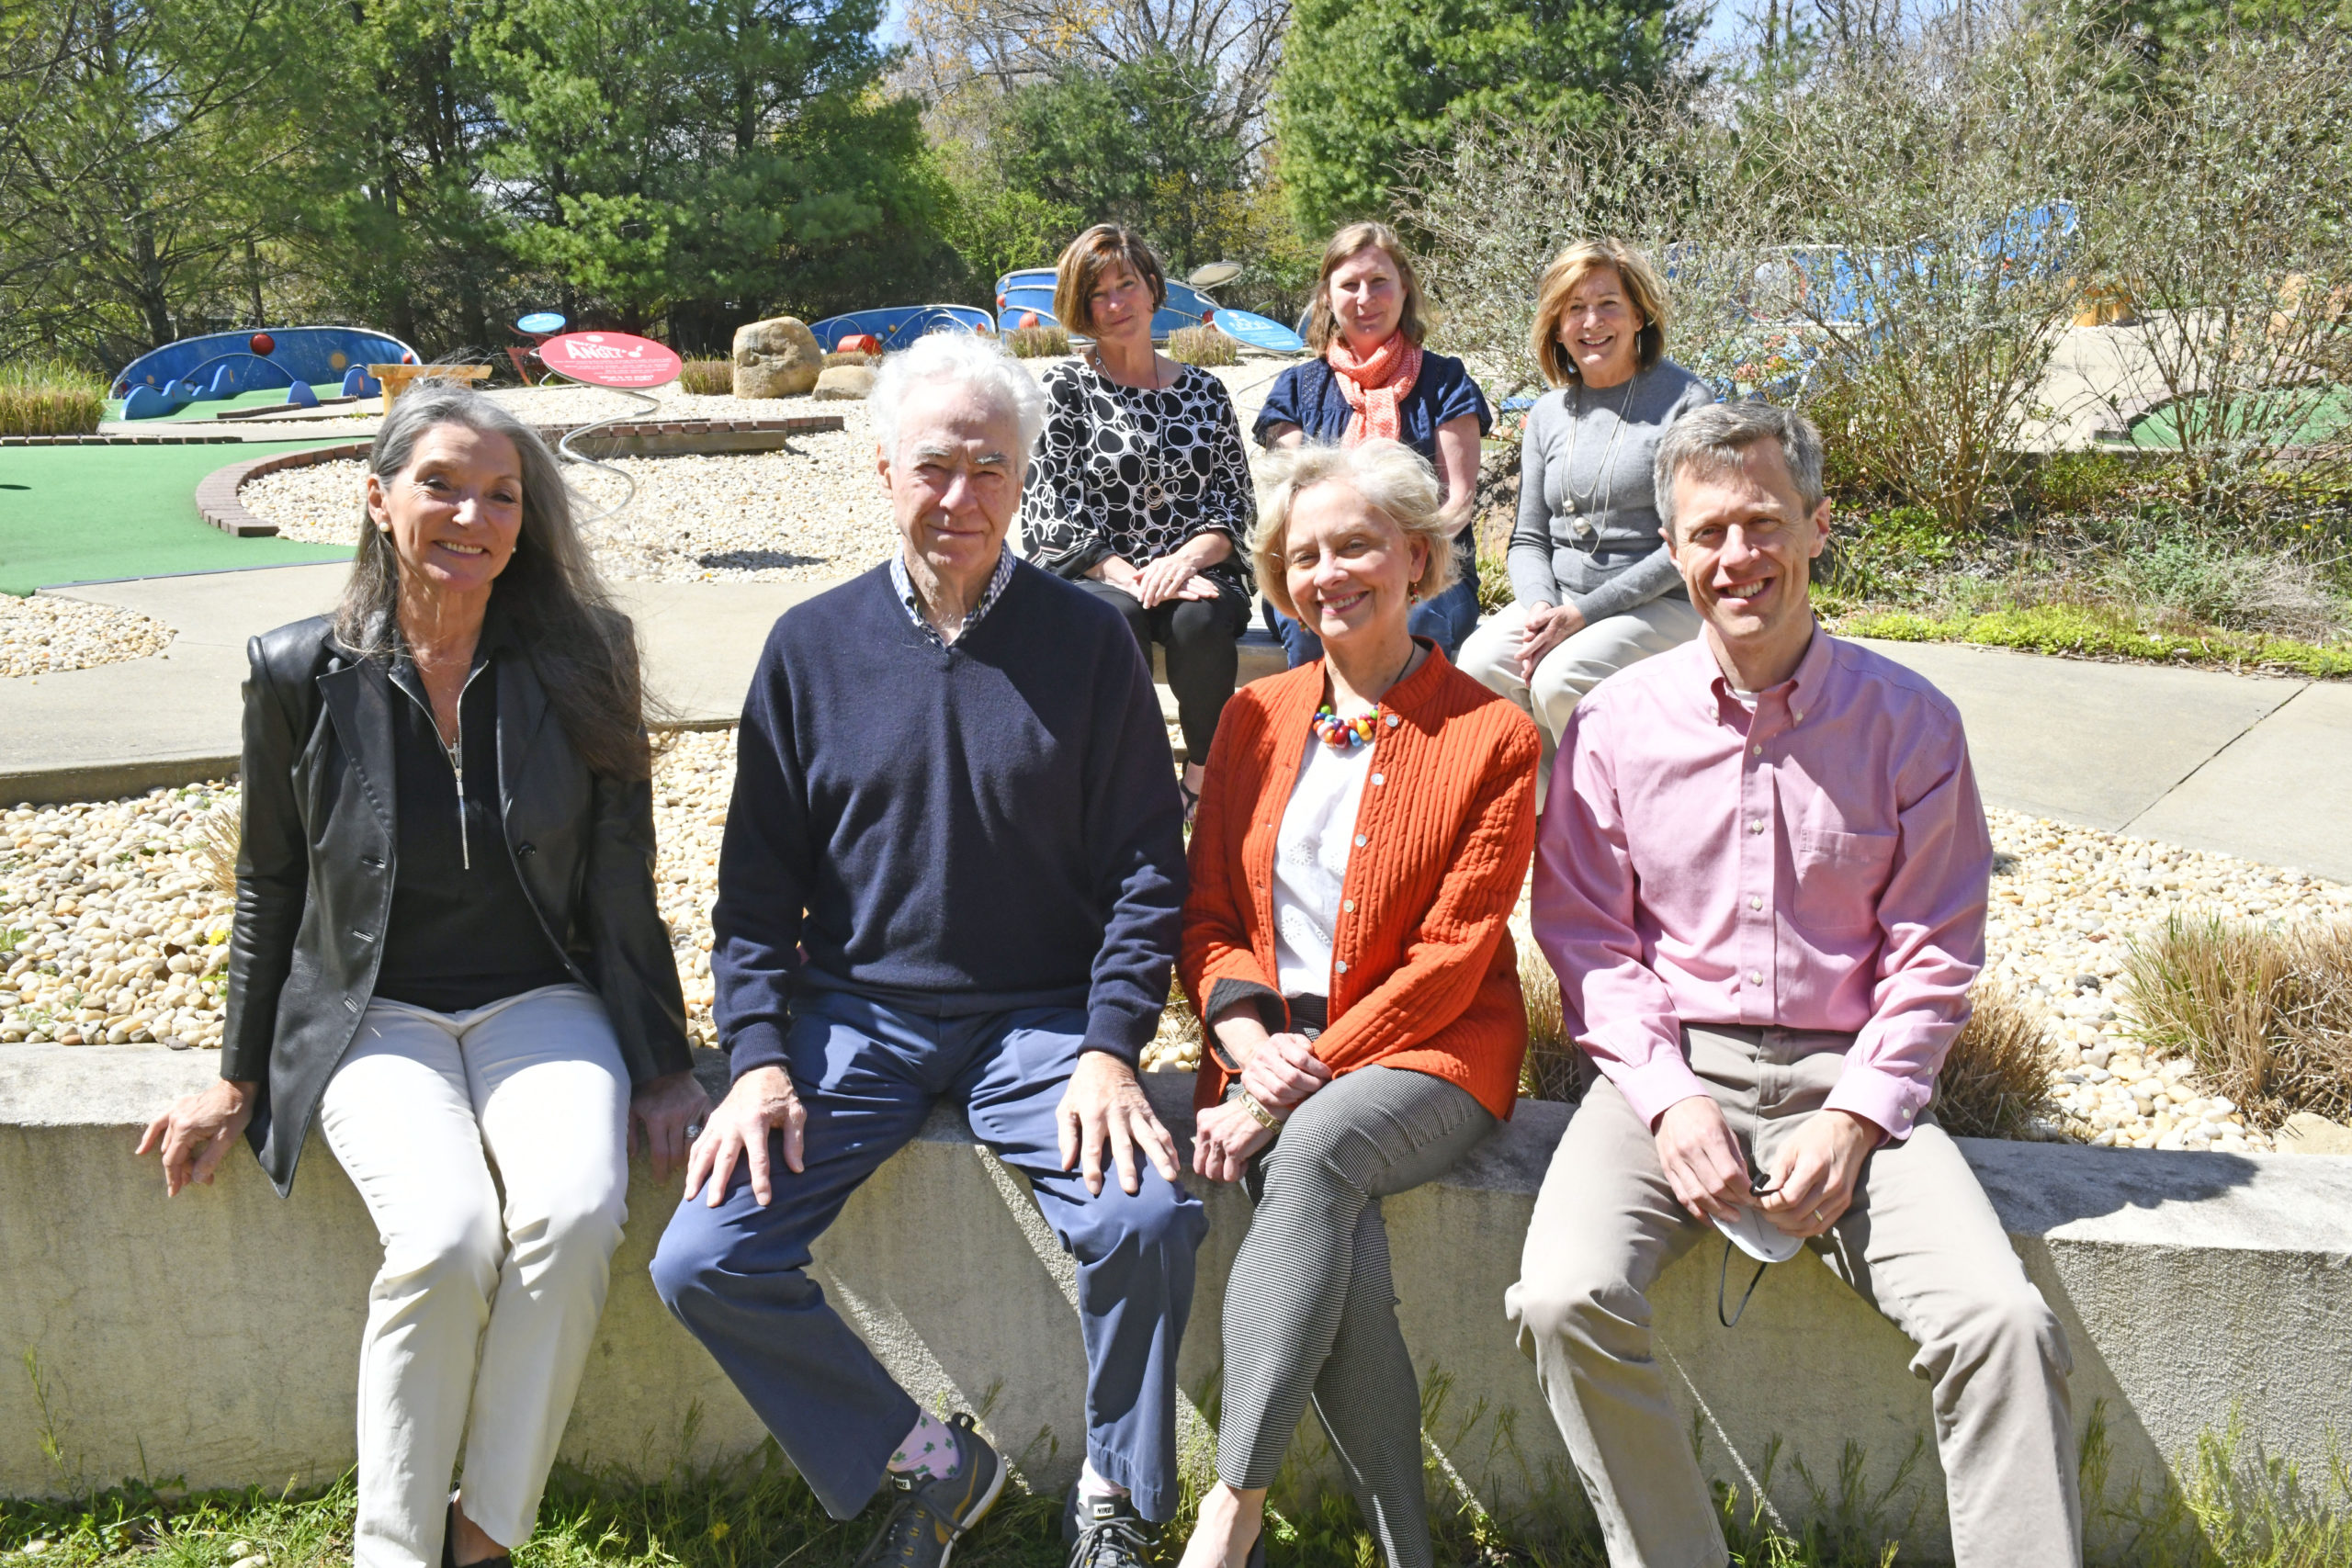 At CMEE, back row, Theresa Roden of i-tri; Rebecca Morgan Taylor, Executive Director of Project Most; and Joan Overlock, director of Development for the Eleanor Whitman Early Childhood Center. Front row, left to right, Deb McEneaney of the Bridgehampton Child Care and Recreational Center; Dan Shedrick, creator, Loretta Davis, Executive Director of the Retreat and Stephen Long, President of CMEE.       DANA SHAW